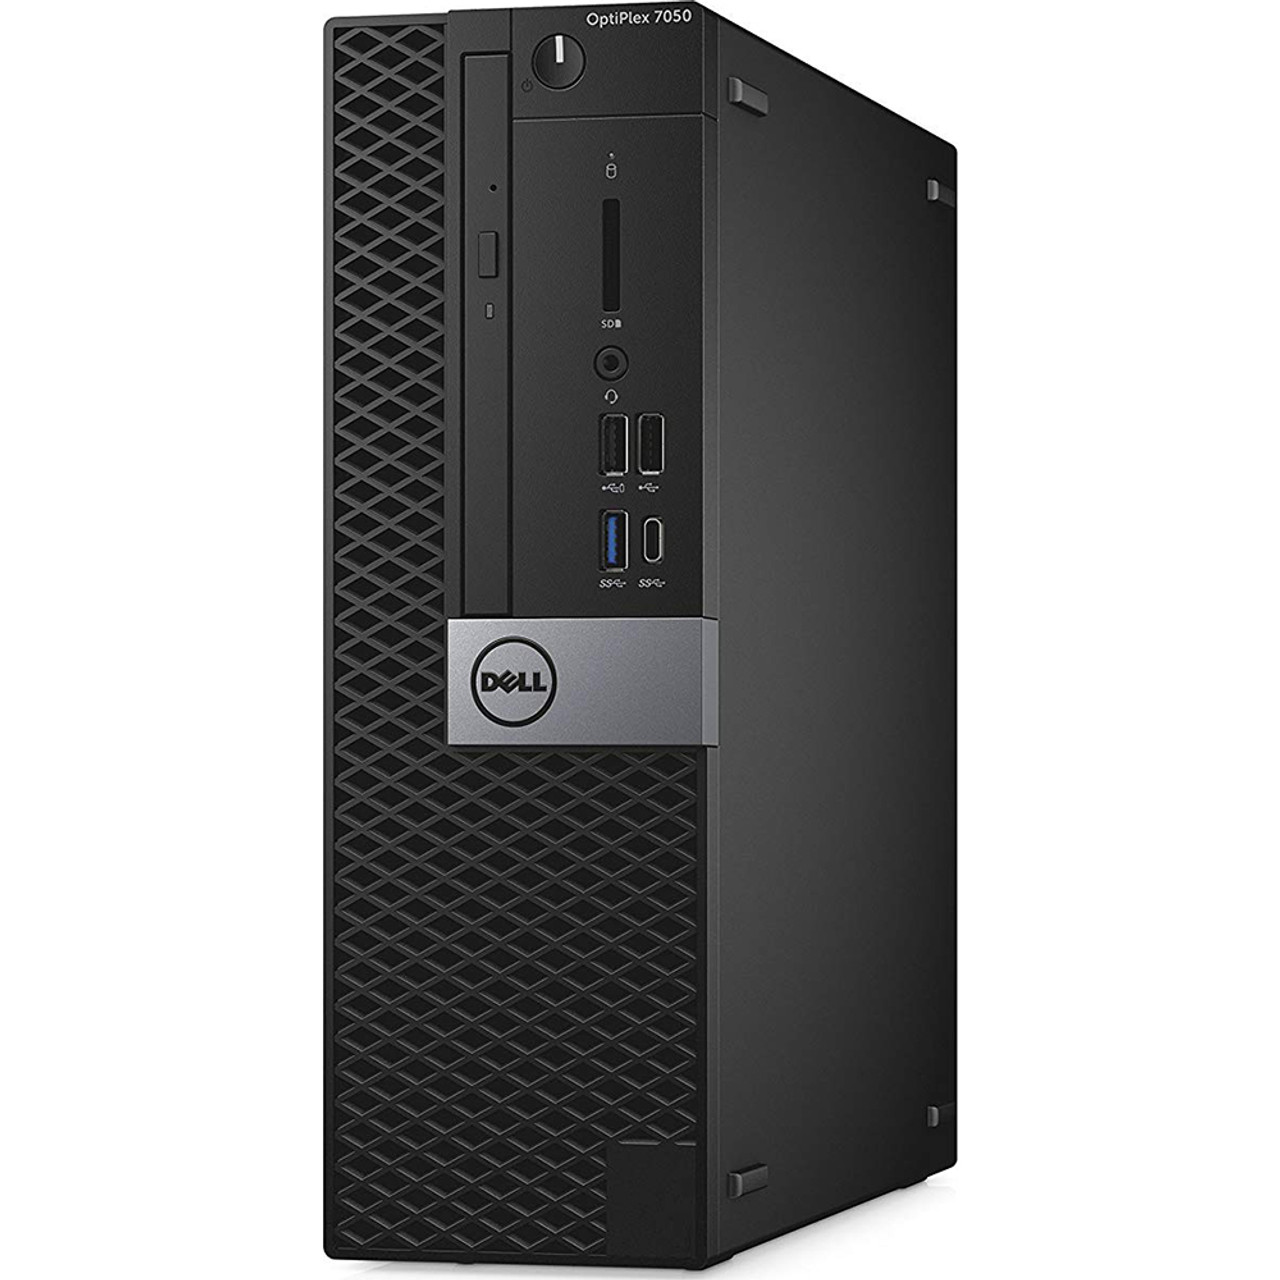 Dell Optiplex 7050 SFF Quad Core i5 3.2GHz, 8GB Ram, 500GB HDD, DVD-RW, Windows 10 Pro 64 Desktop Computer